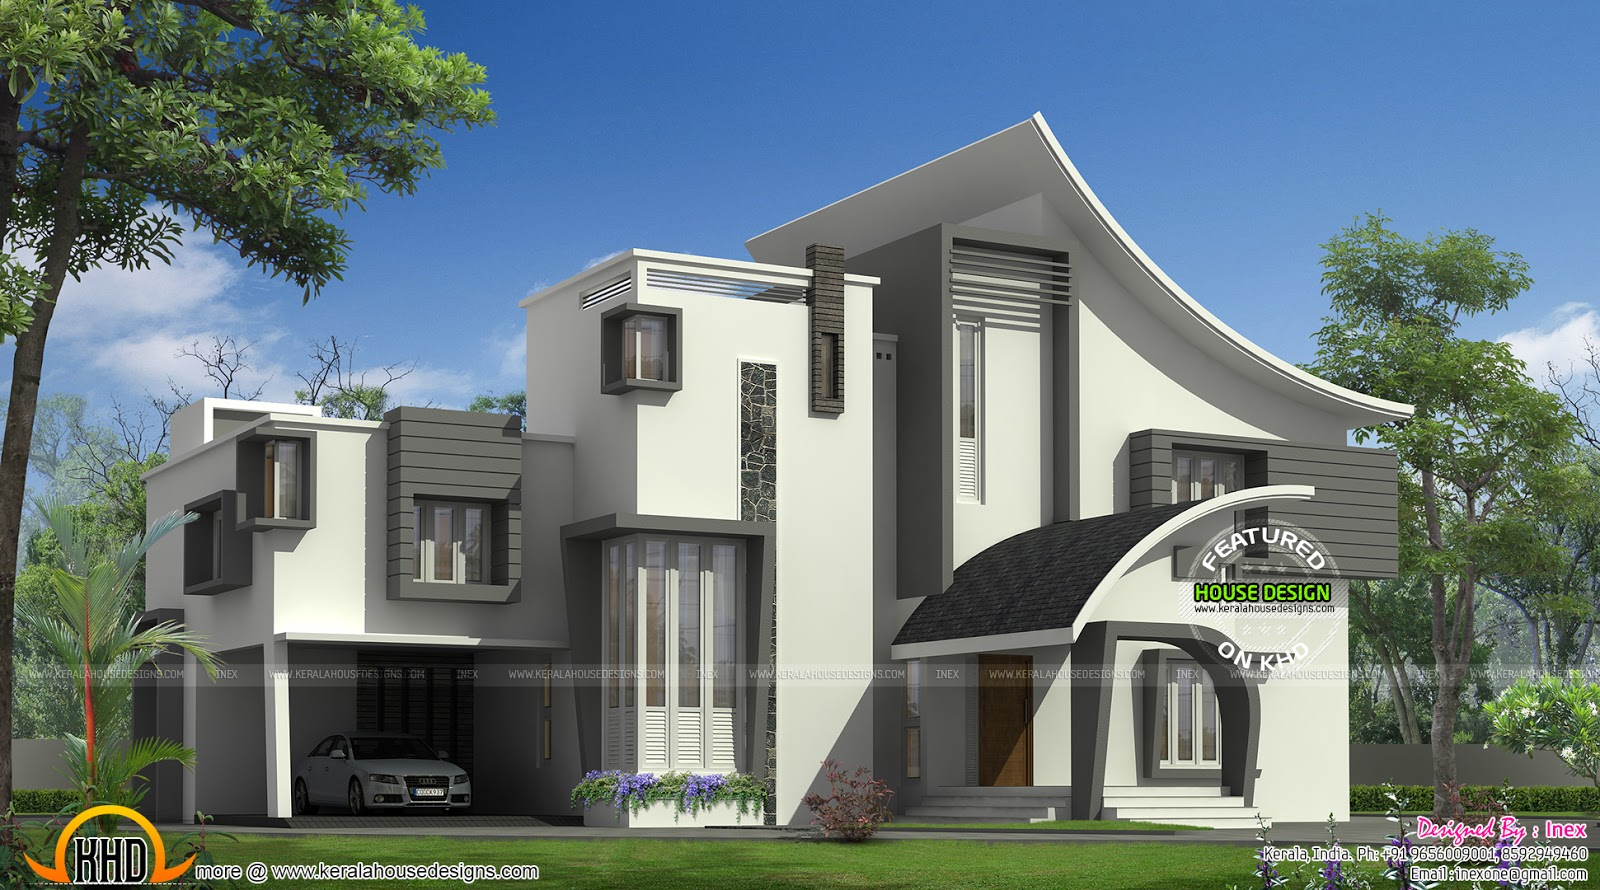 Ultra modern luxury home in kerala kerala home design for Home design images modern